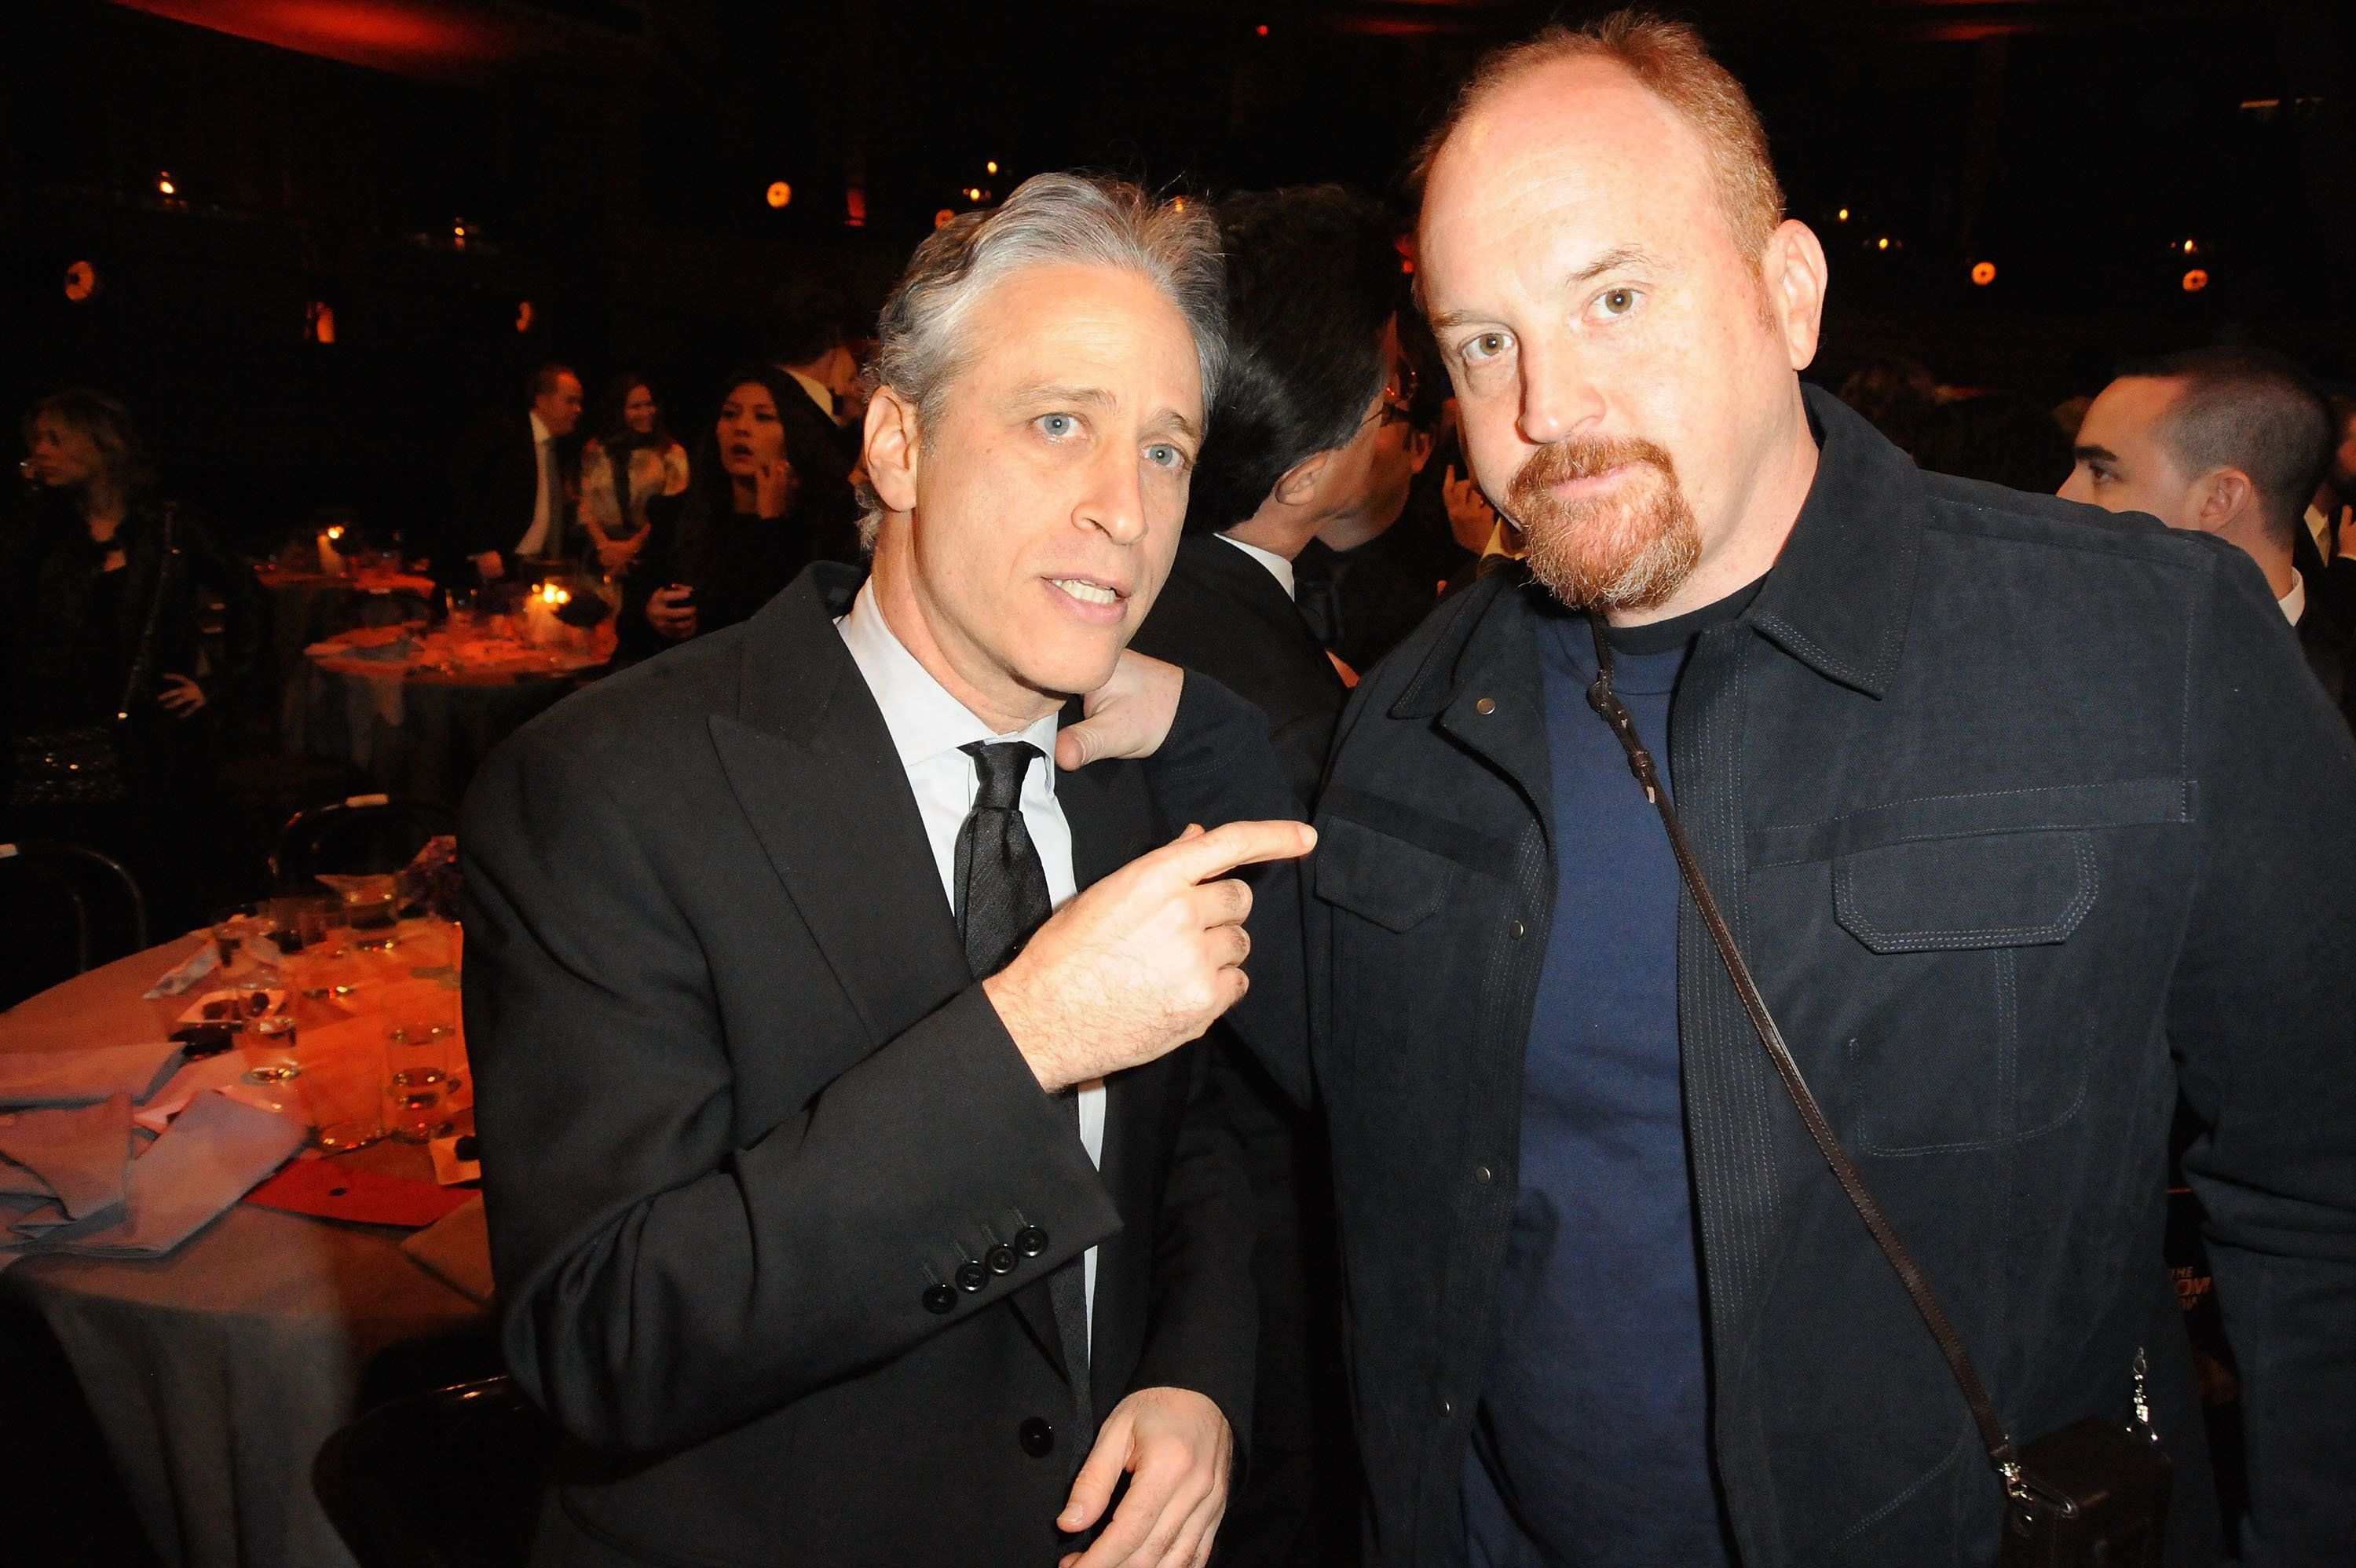 Jon Stewart and Louis C.K. at the First Annual Comedy Awards on March 26,